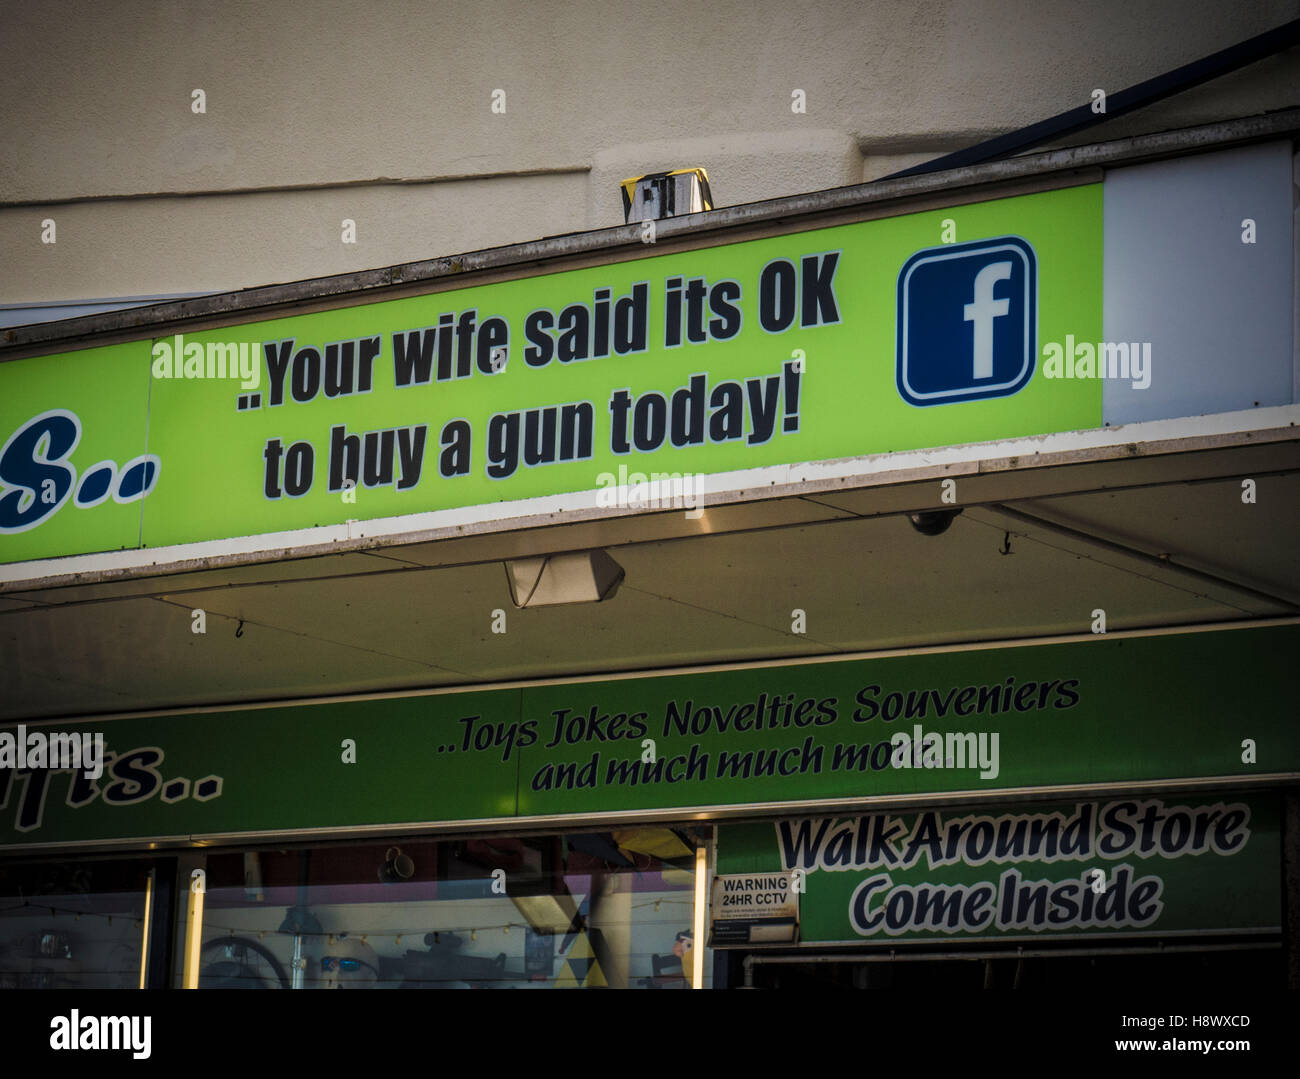 YOUR WIFE SAID ITS OK TO BUY A GUN TODAY sign on shopfront - Stock Image